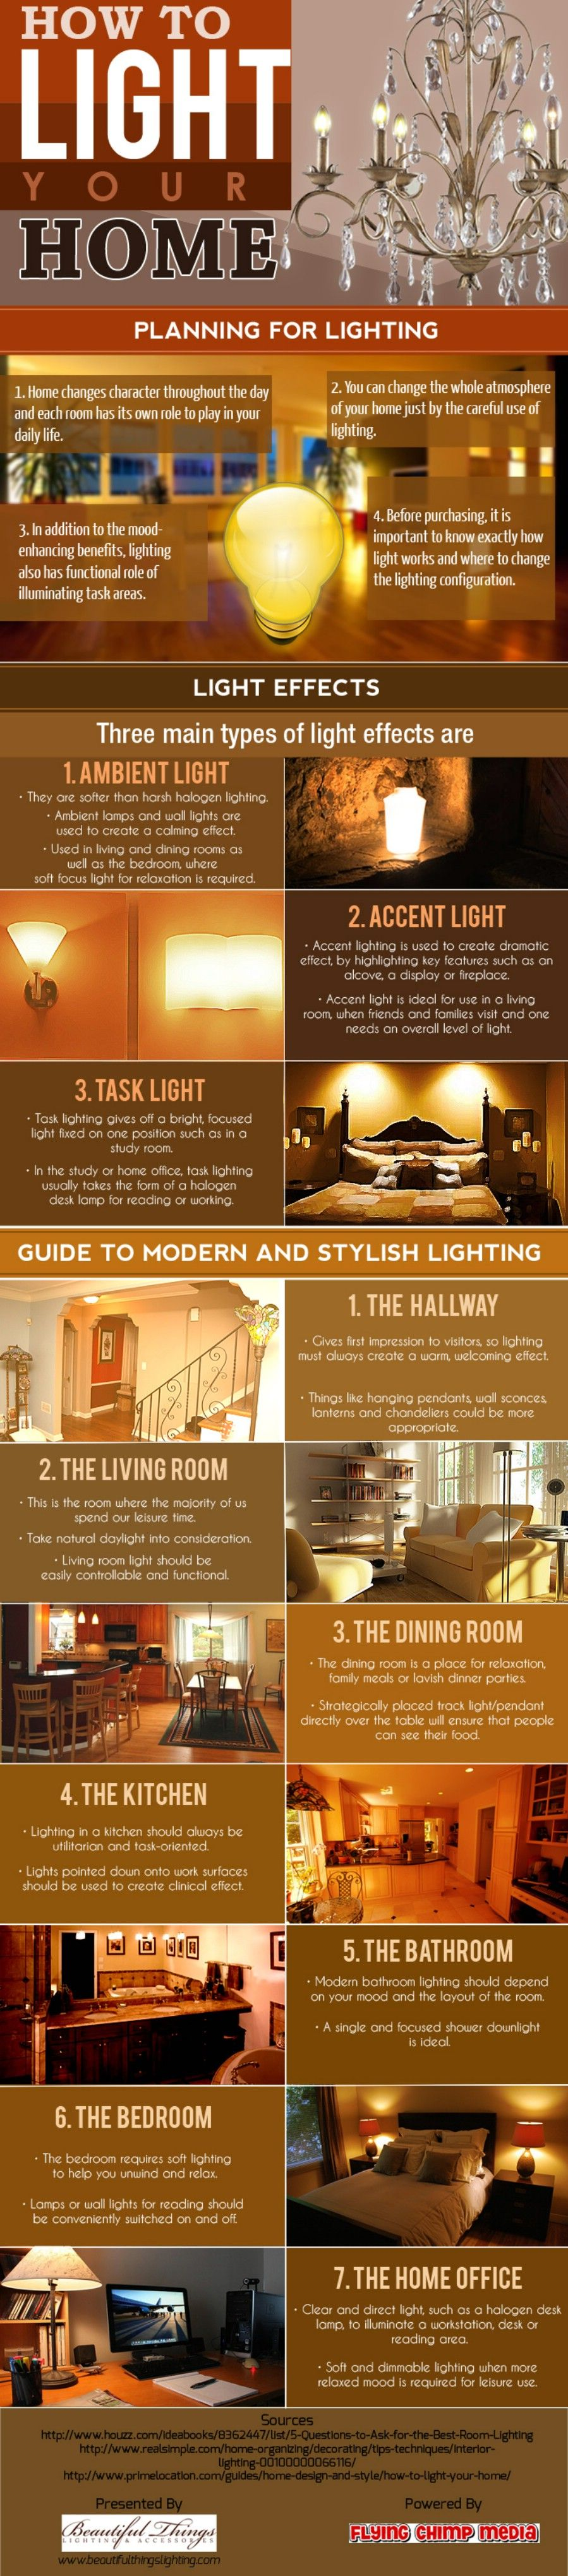 50 Amazingly Clever Cheat Sheets To Simplify Home Decorating Projects - Page...